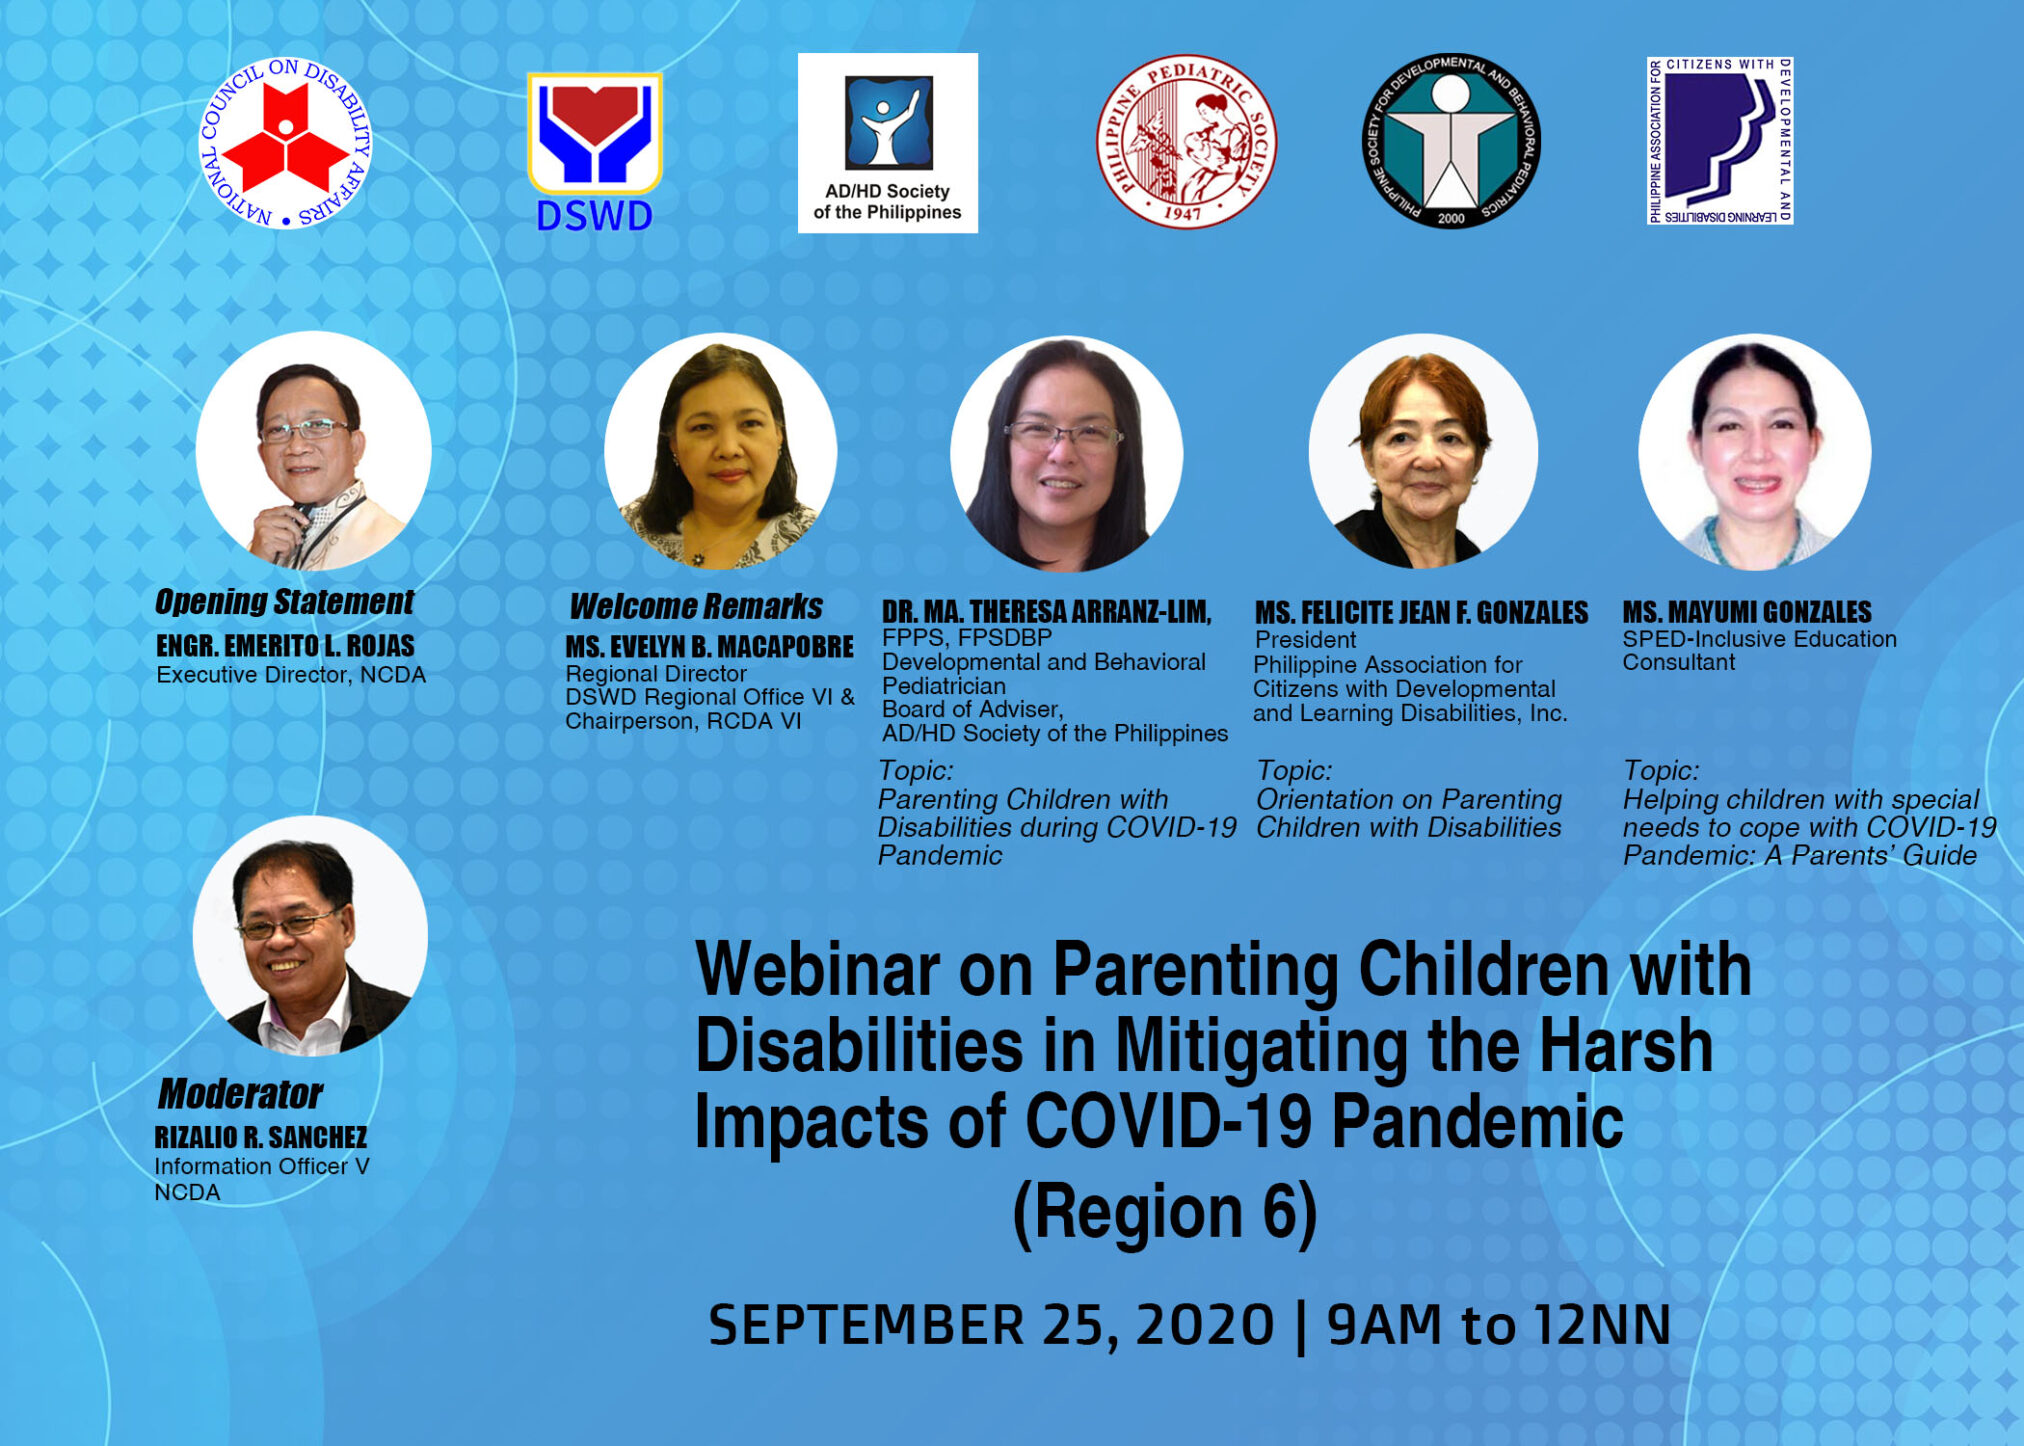 Webinar on Parenting Children with Disabilities in Mitigating the Harsh Impacts of COVID-19 Pandemic (Region 6)